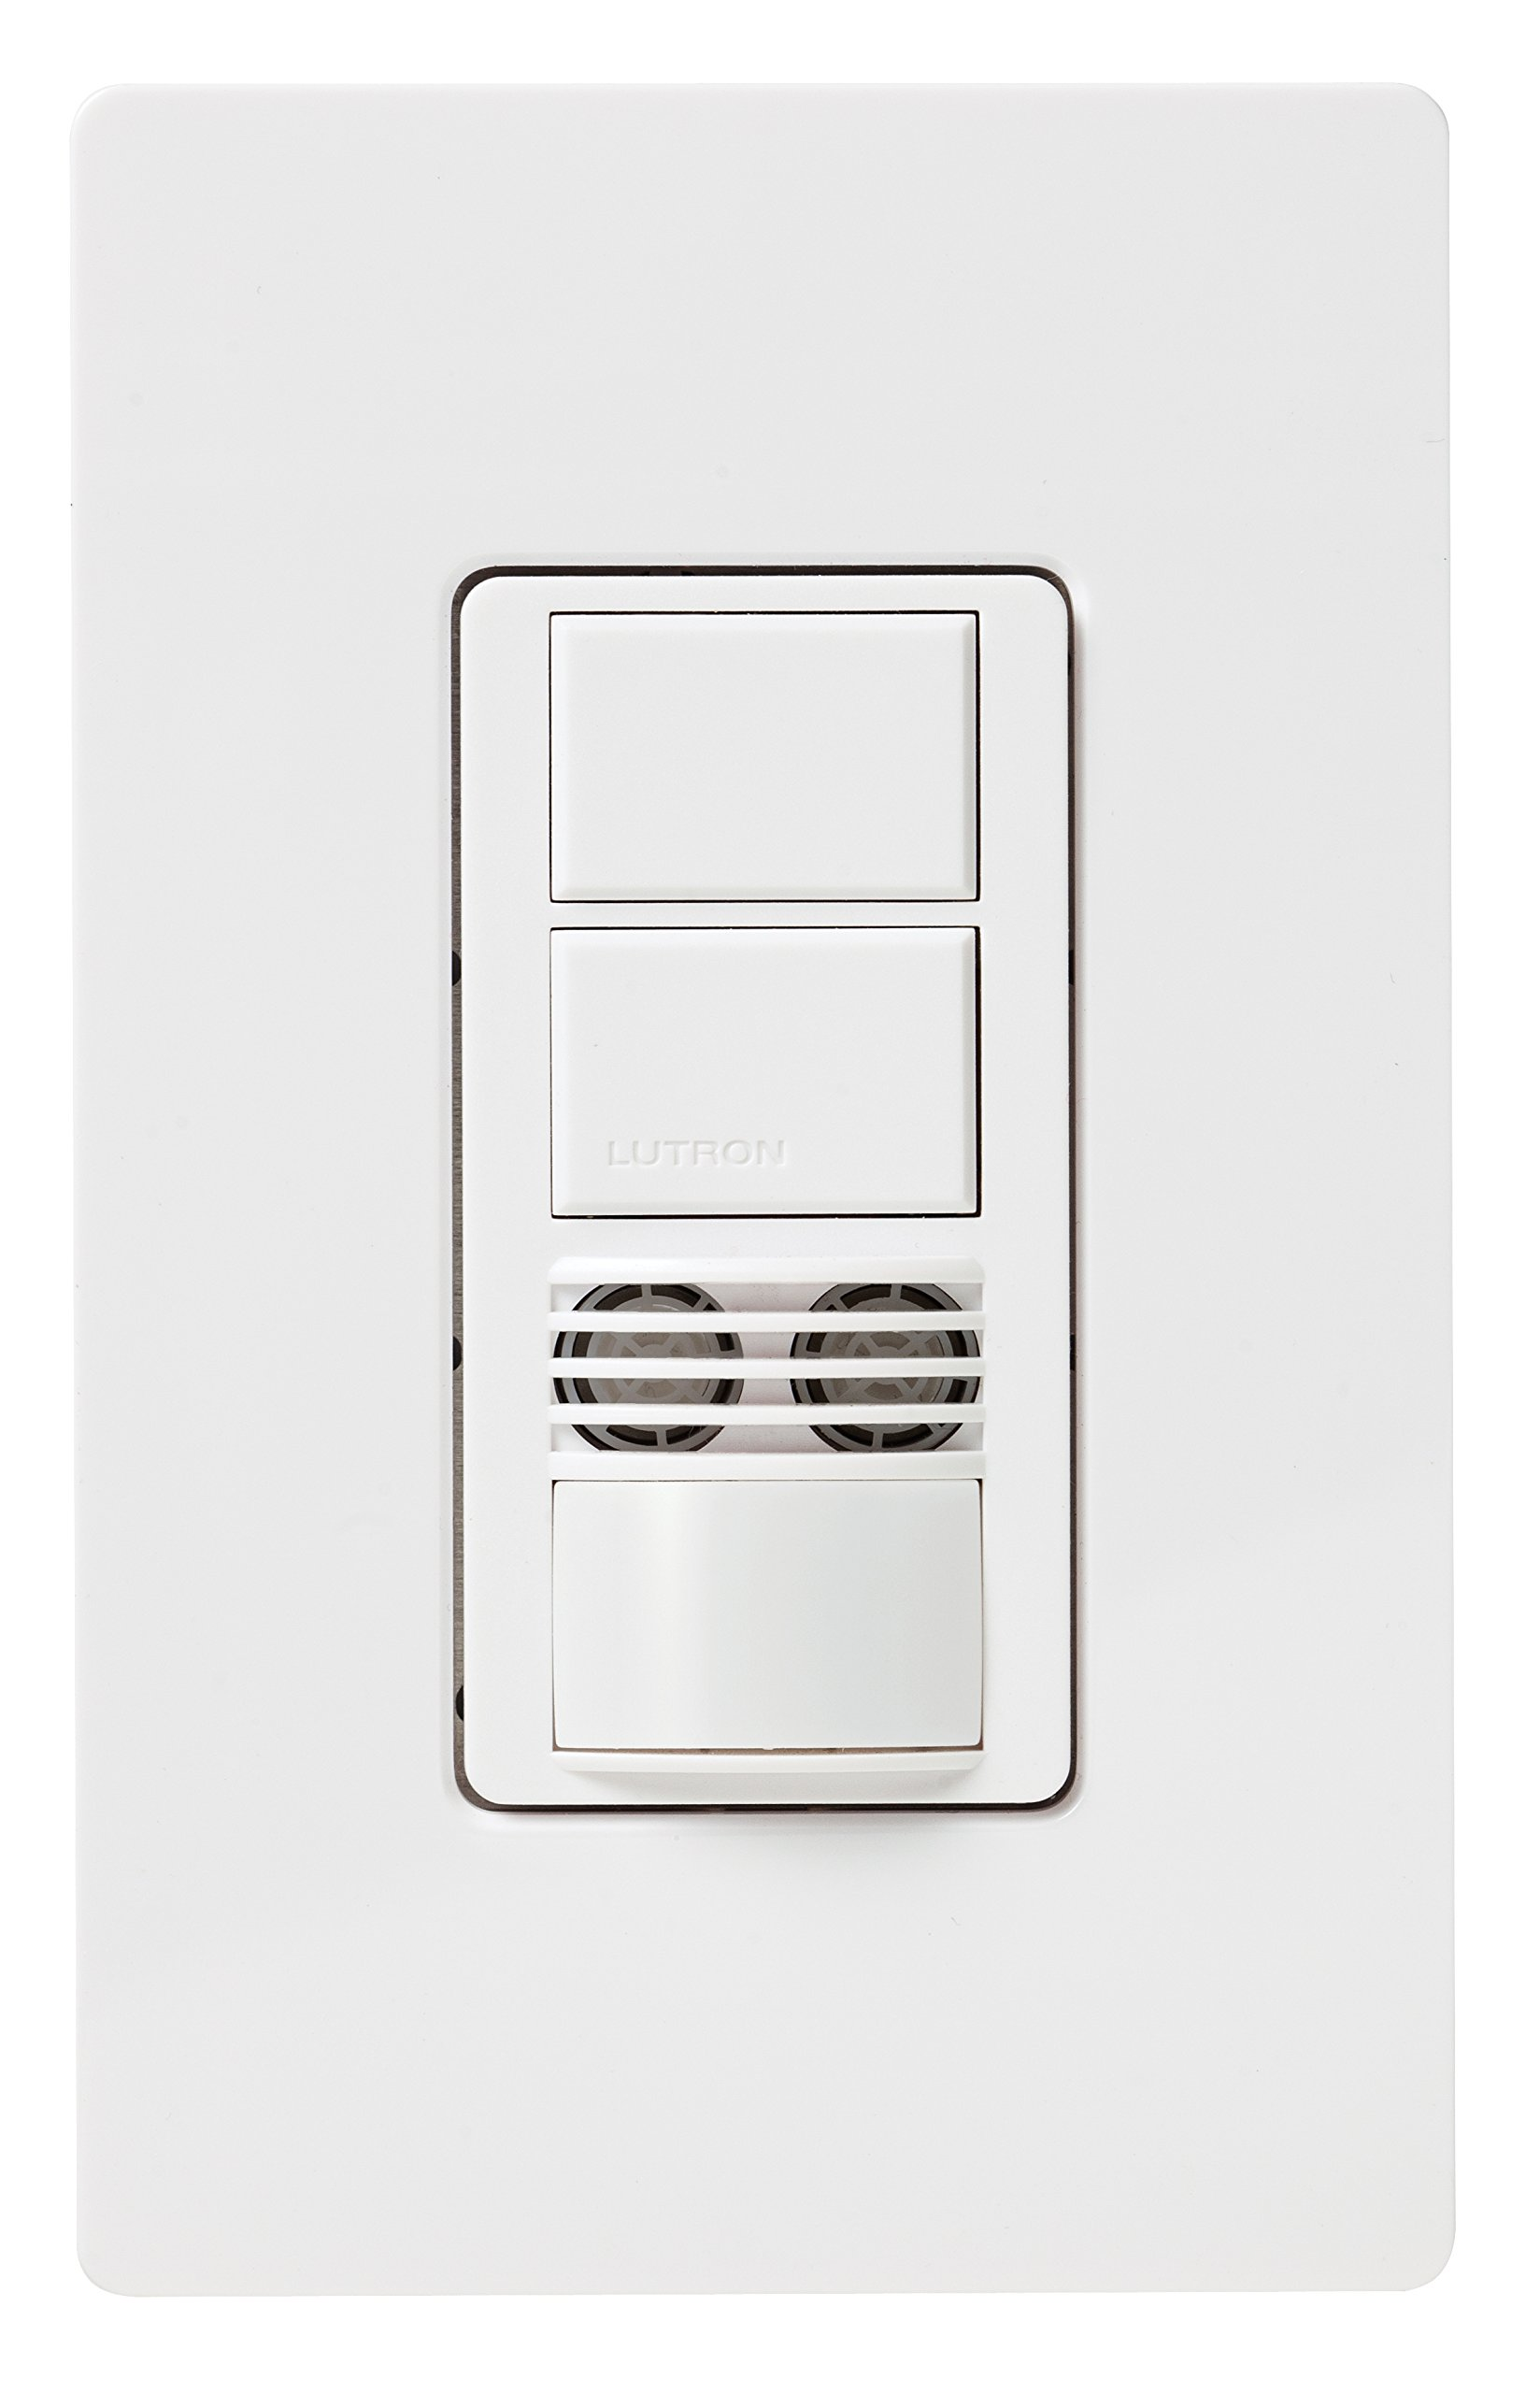 Lutron MS-A202-WH Maestro Dual Tech Dual Circuit Occupancy Sensor Switch, no neutral required, 6 Amp Single-Pole, White by Lutron (Image #2)